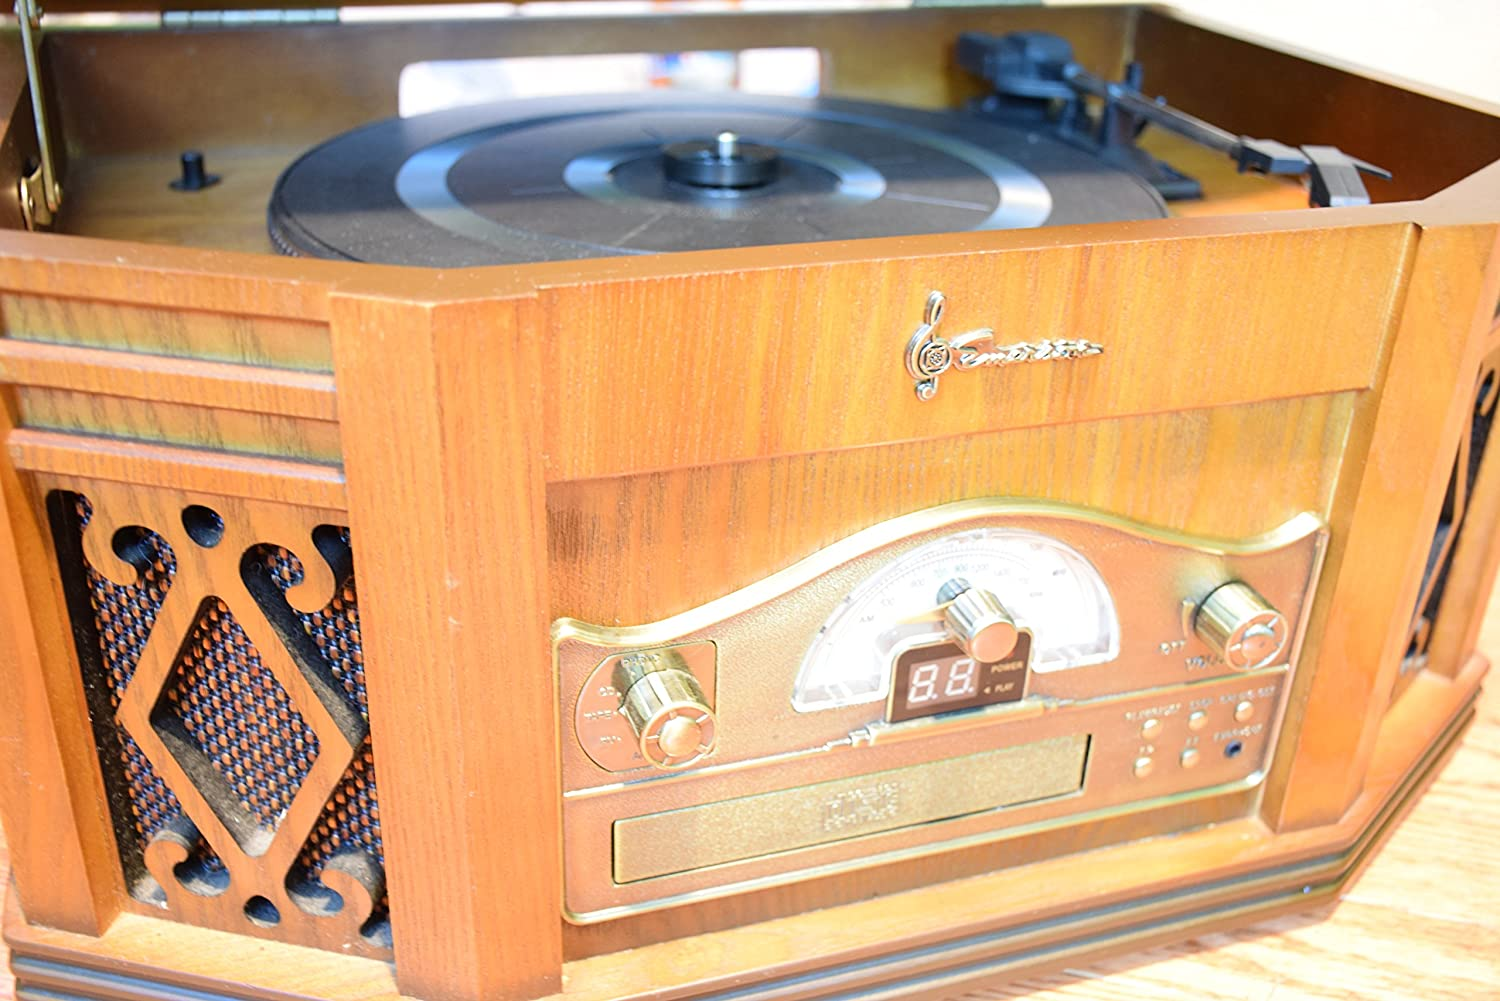 Amazon.com: Emerson EME NR303TTC 4 In 1 Vintage Classic Turntable Real Wood  Stereo System With AM/FM Radio, CD, Cassette Tape, And Full Size Record  Player ...